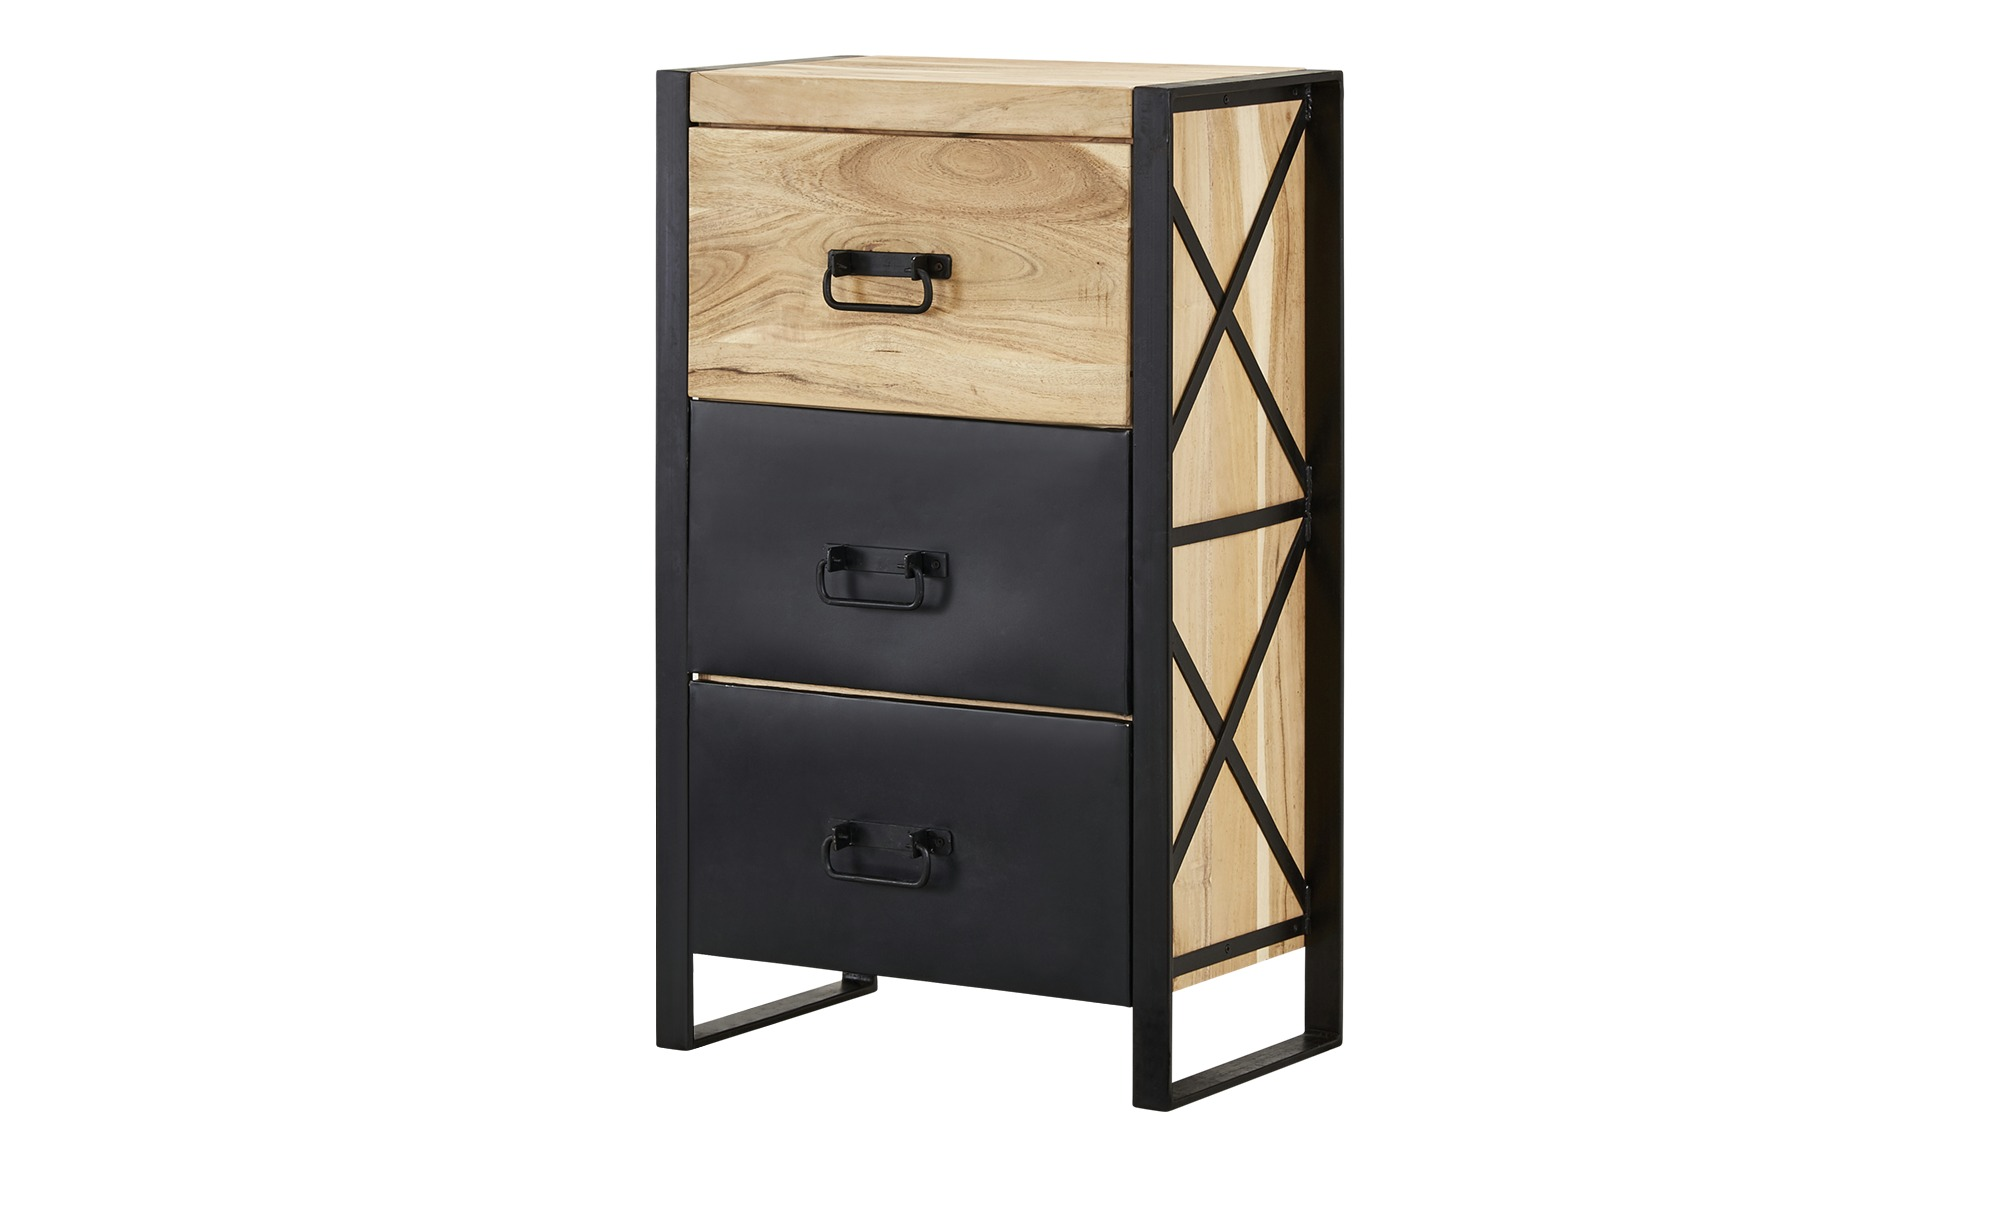 kommode queens breite 60 cm h he 98 cm online kaufen bei woonio. Black Bedroom Furniture Sets. Home Design Ideas